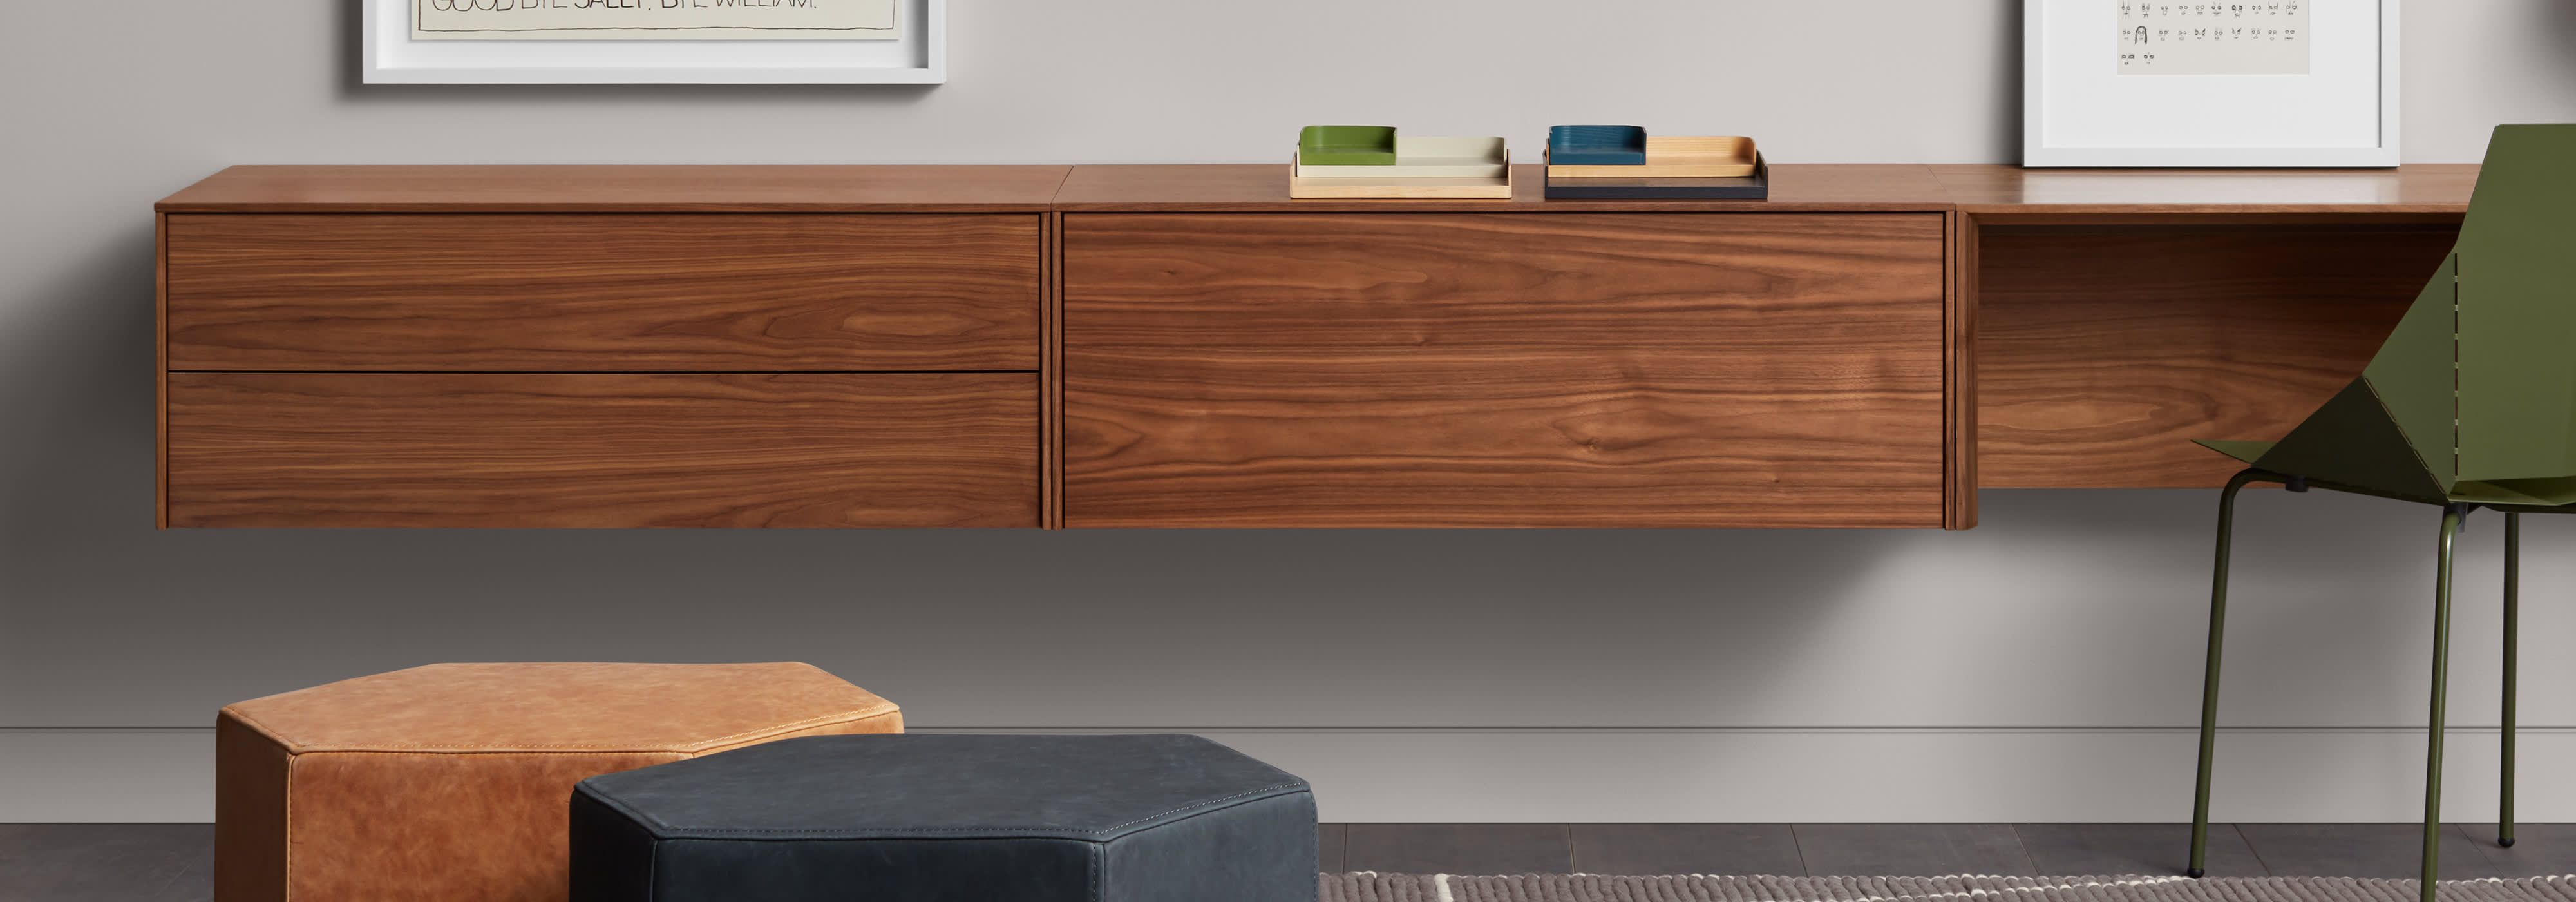 Blu Dot Modern Office Storage Brings Contemporary Design To Home And Work Office Spaces Browse Modern Offic Modern Office Storage Office Storage Modern Office